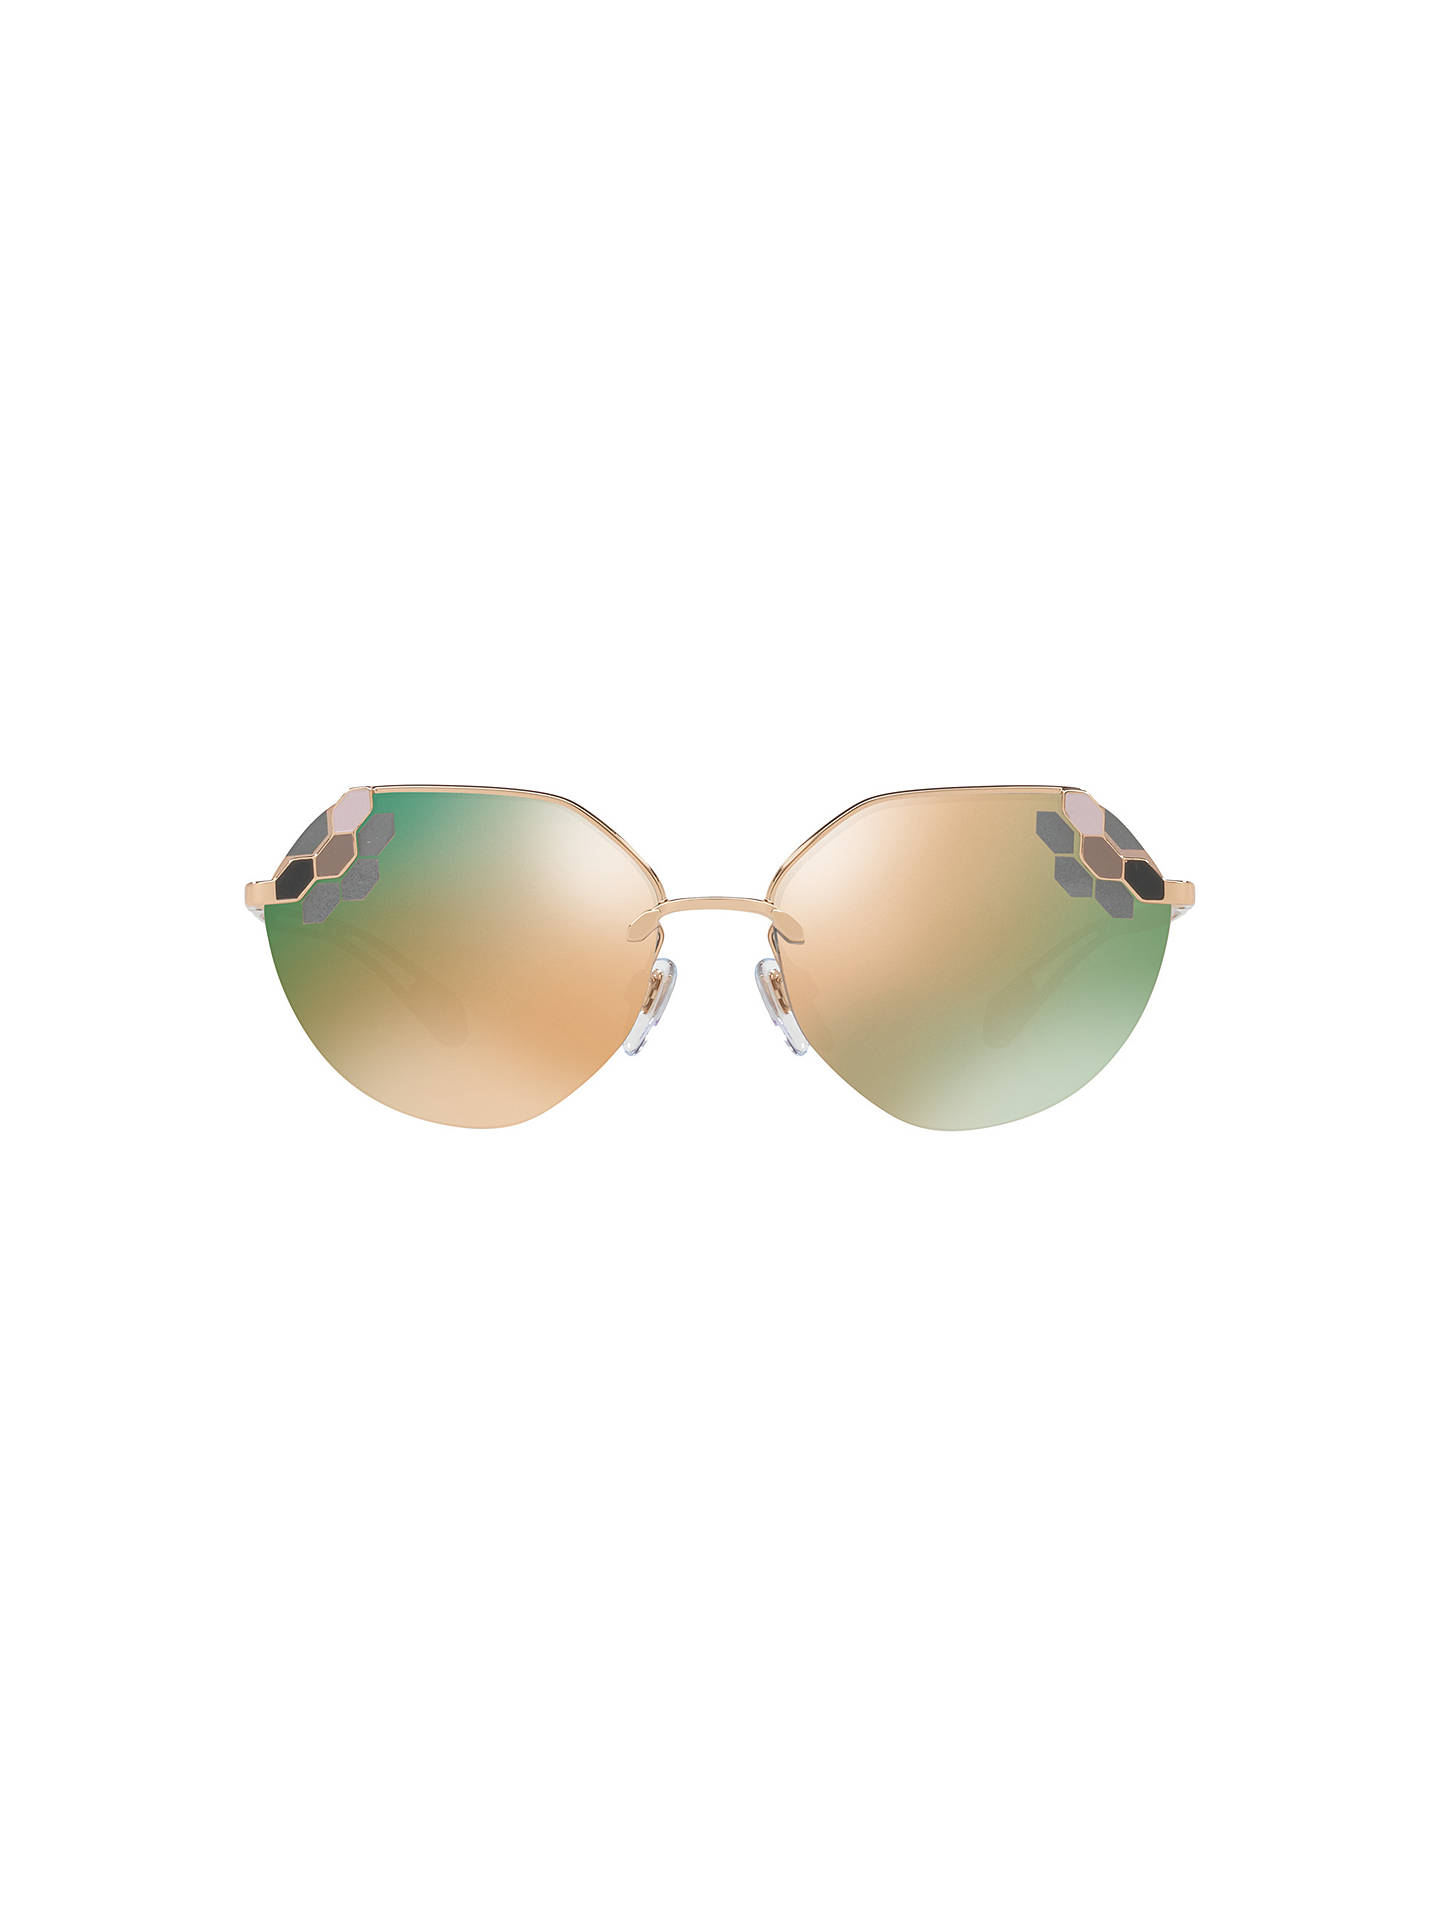 BuyBVLGARI BV6099 Women's Aviator Sunglasses, Gold/Mirror Brown Online at johnlewis.com